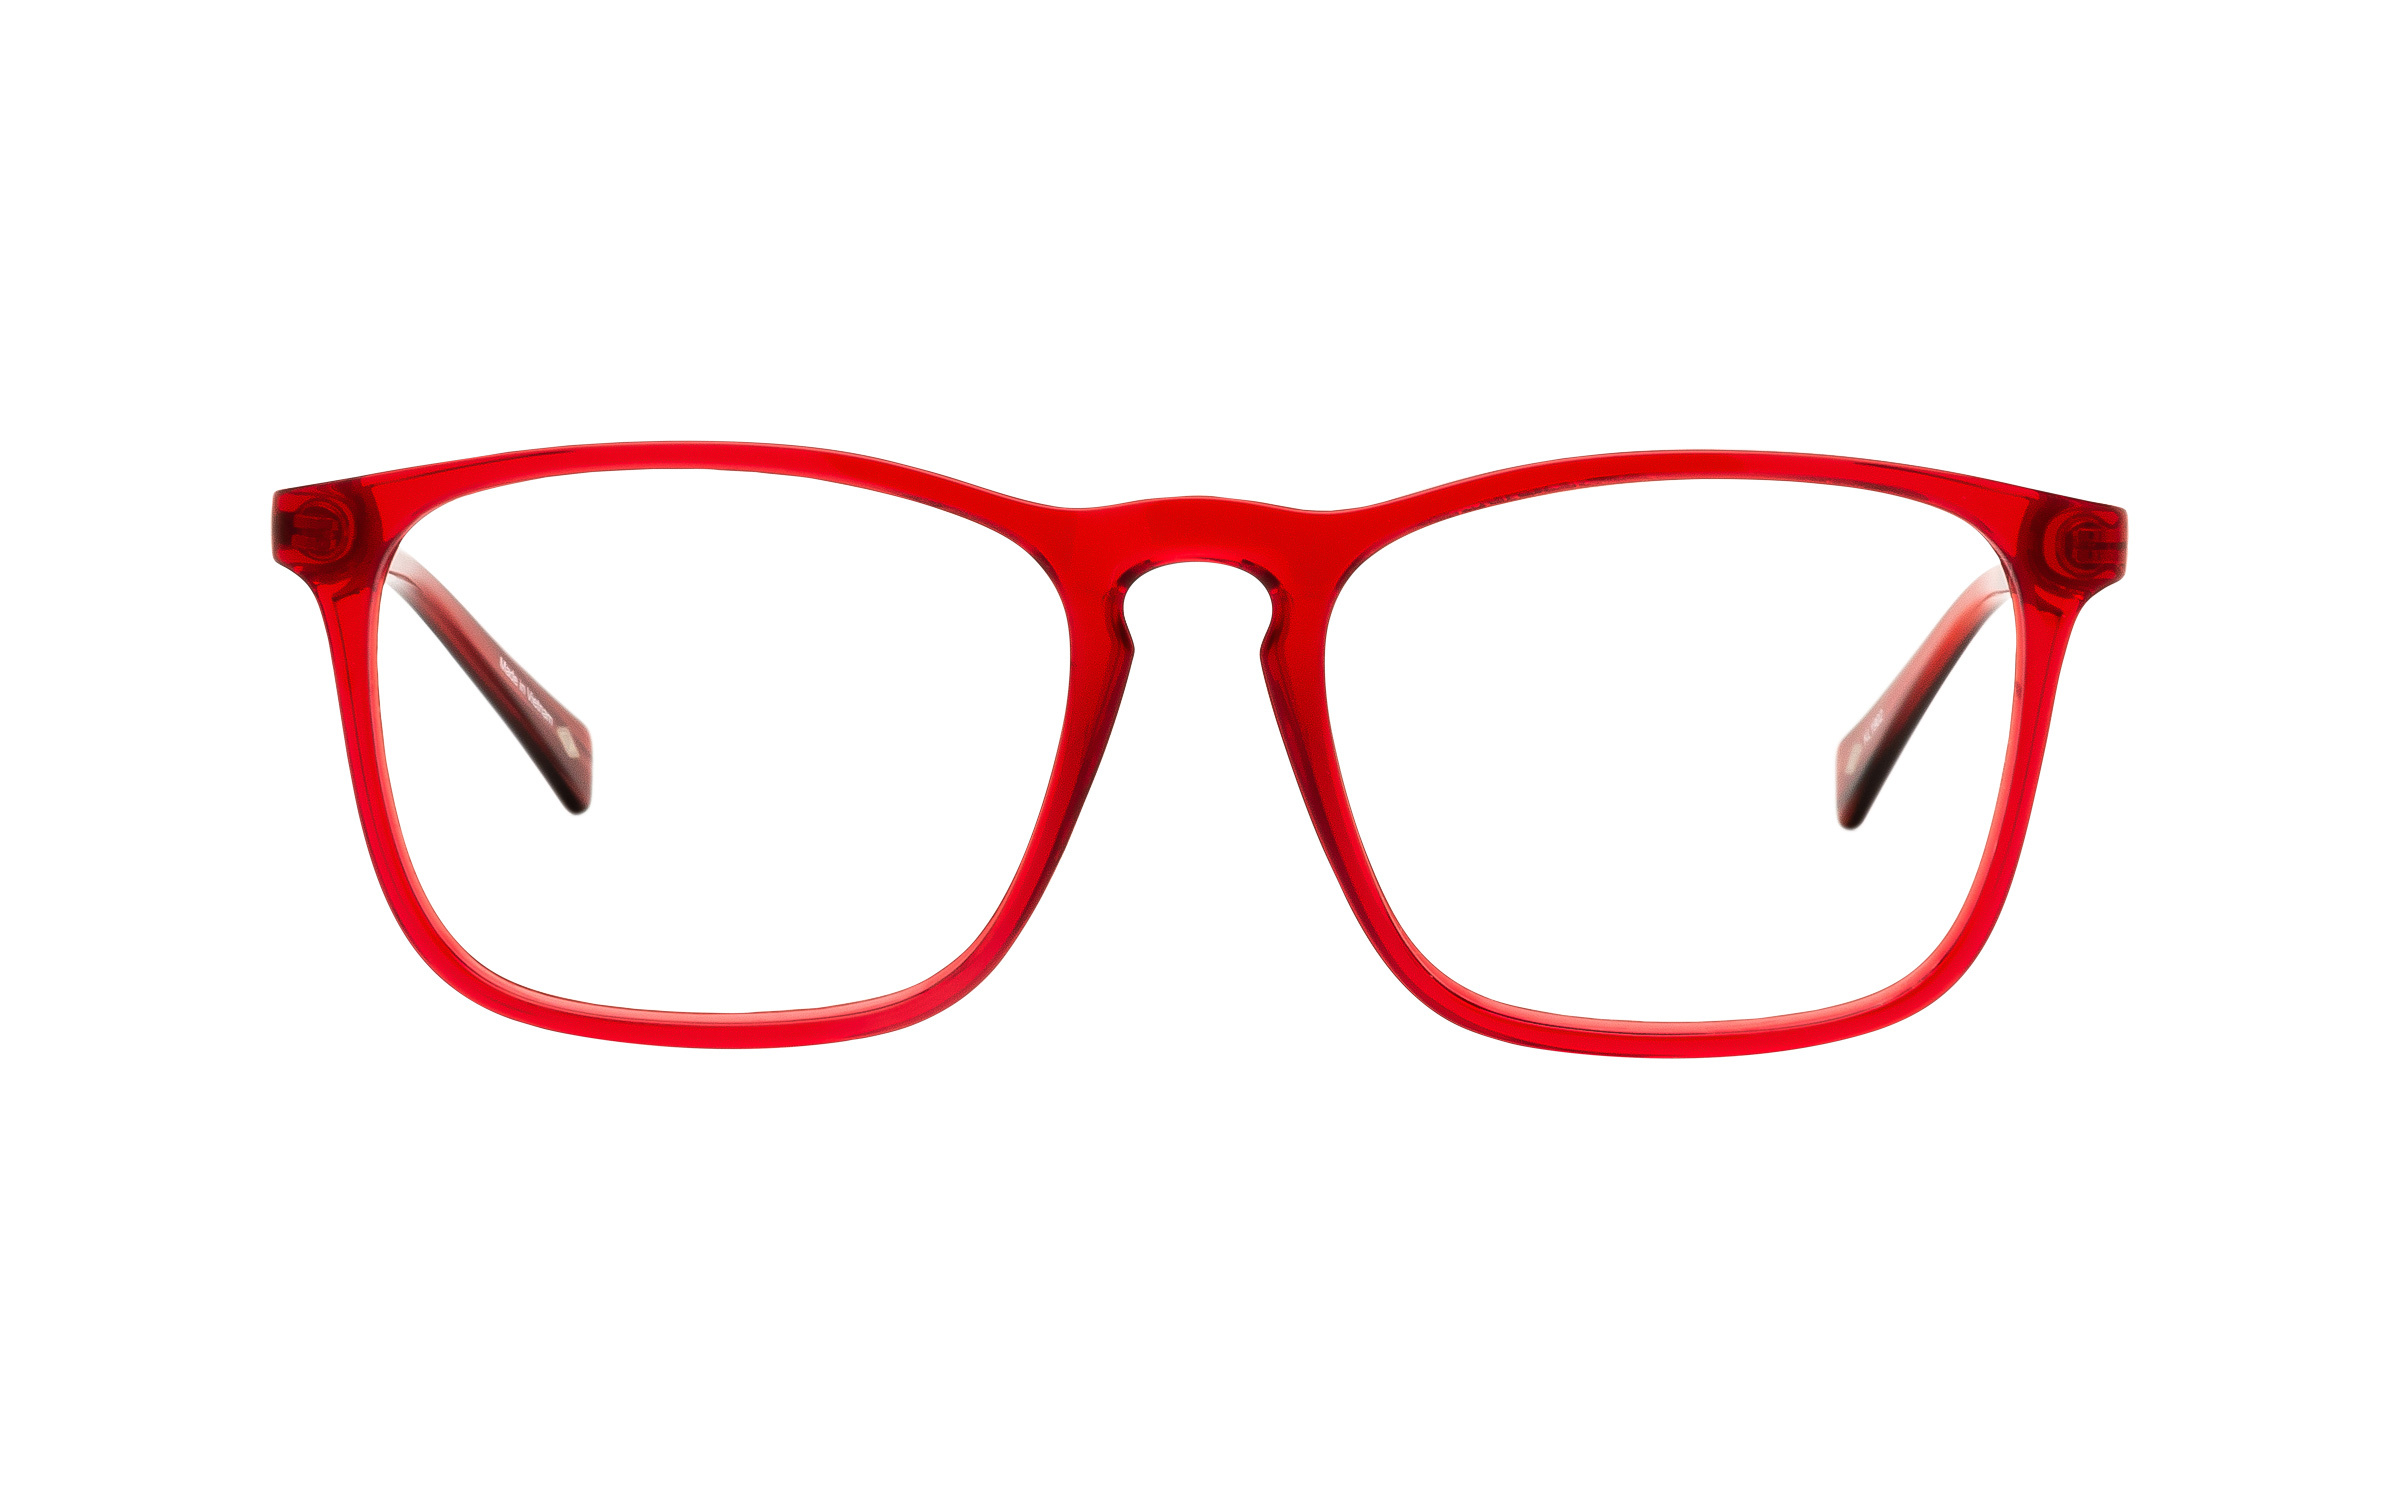 Main and Central Tramore MC158 C03 (54) Eyeglasses and Frame in Cherry Red | Metal